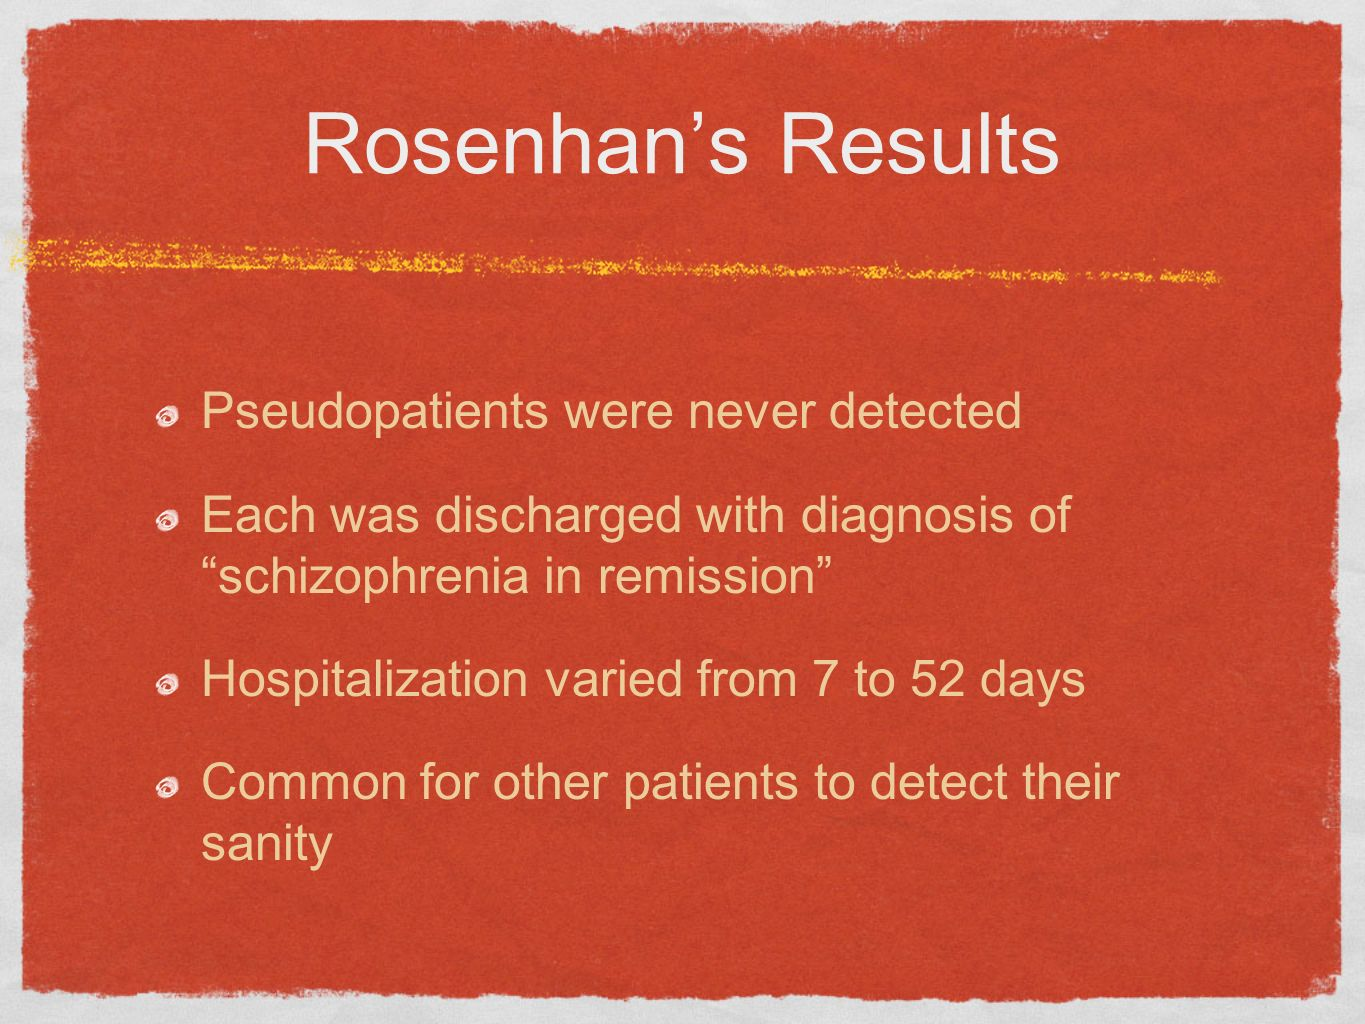 Rosenhans Results Pseudopatients were never detected Each was discharged with diagnosis of schizophrenia in remission Hospitalization varied from 7 to